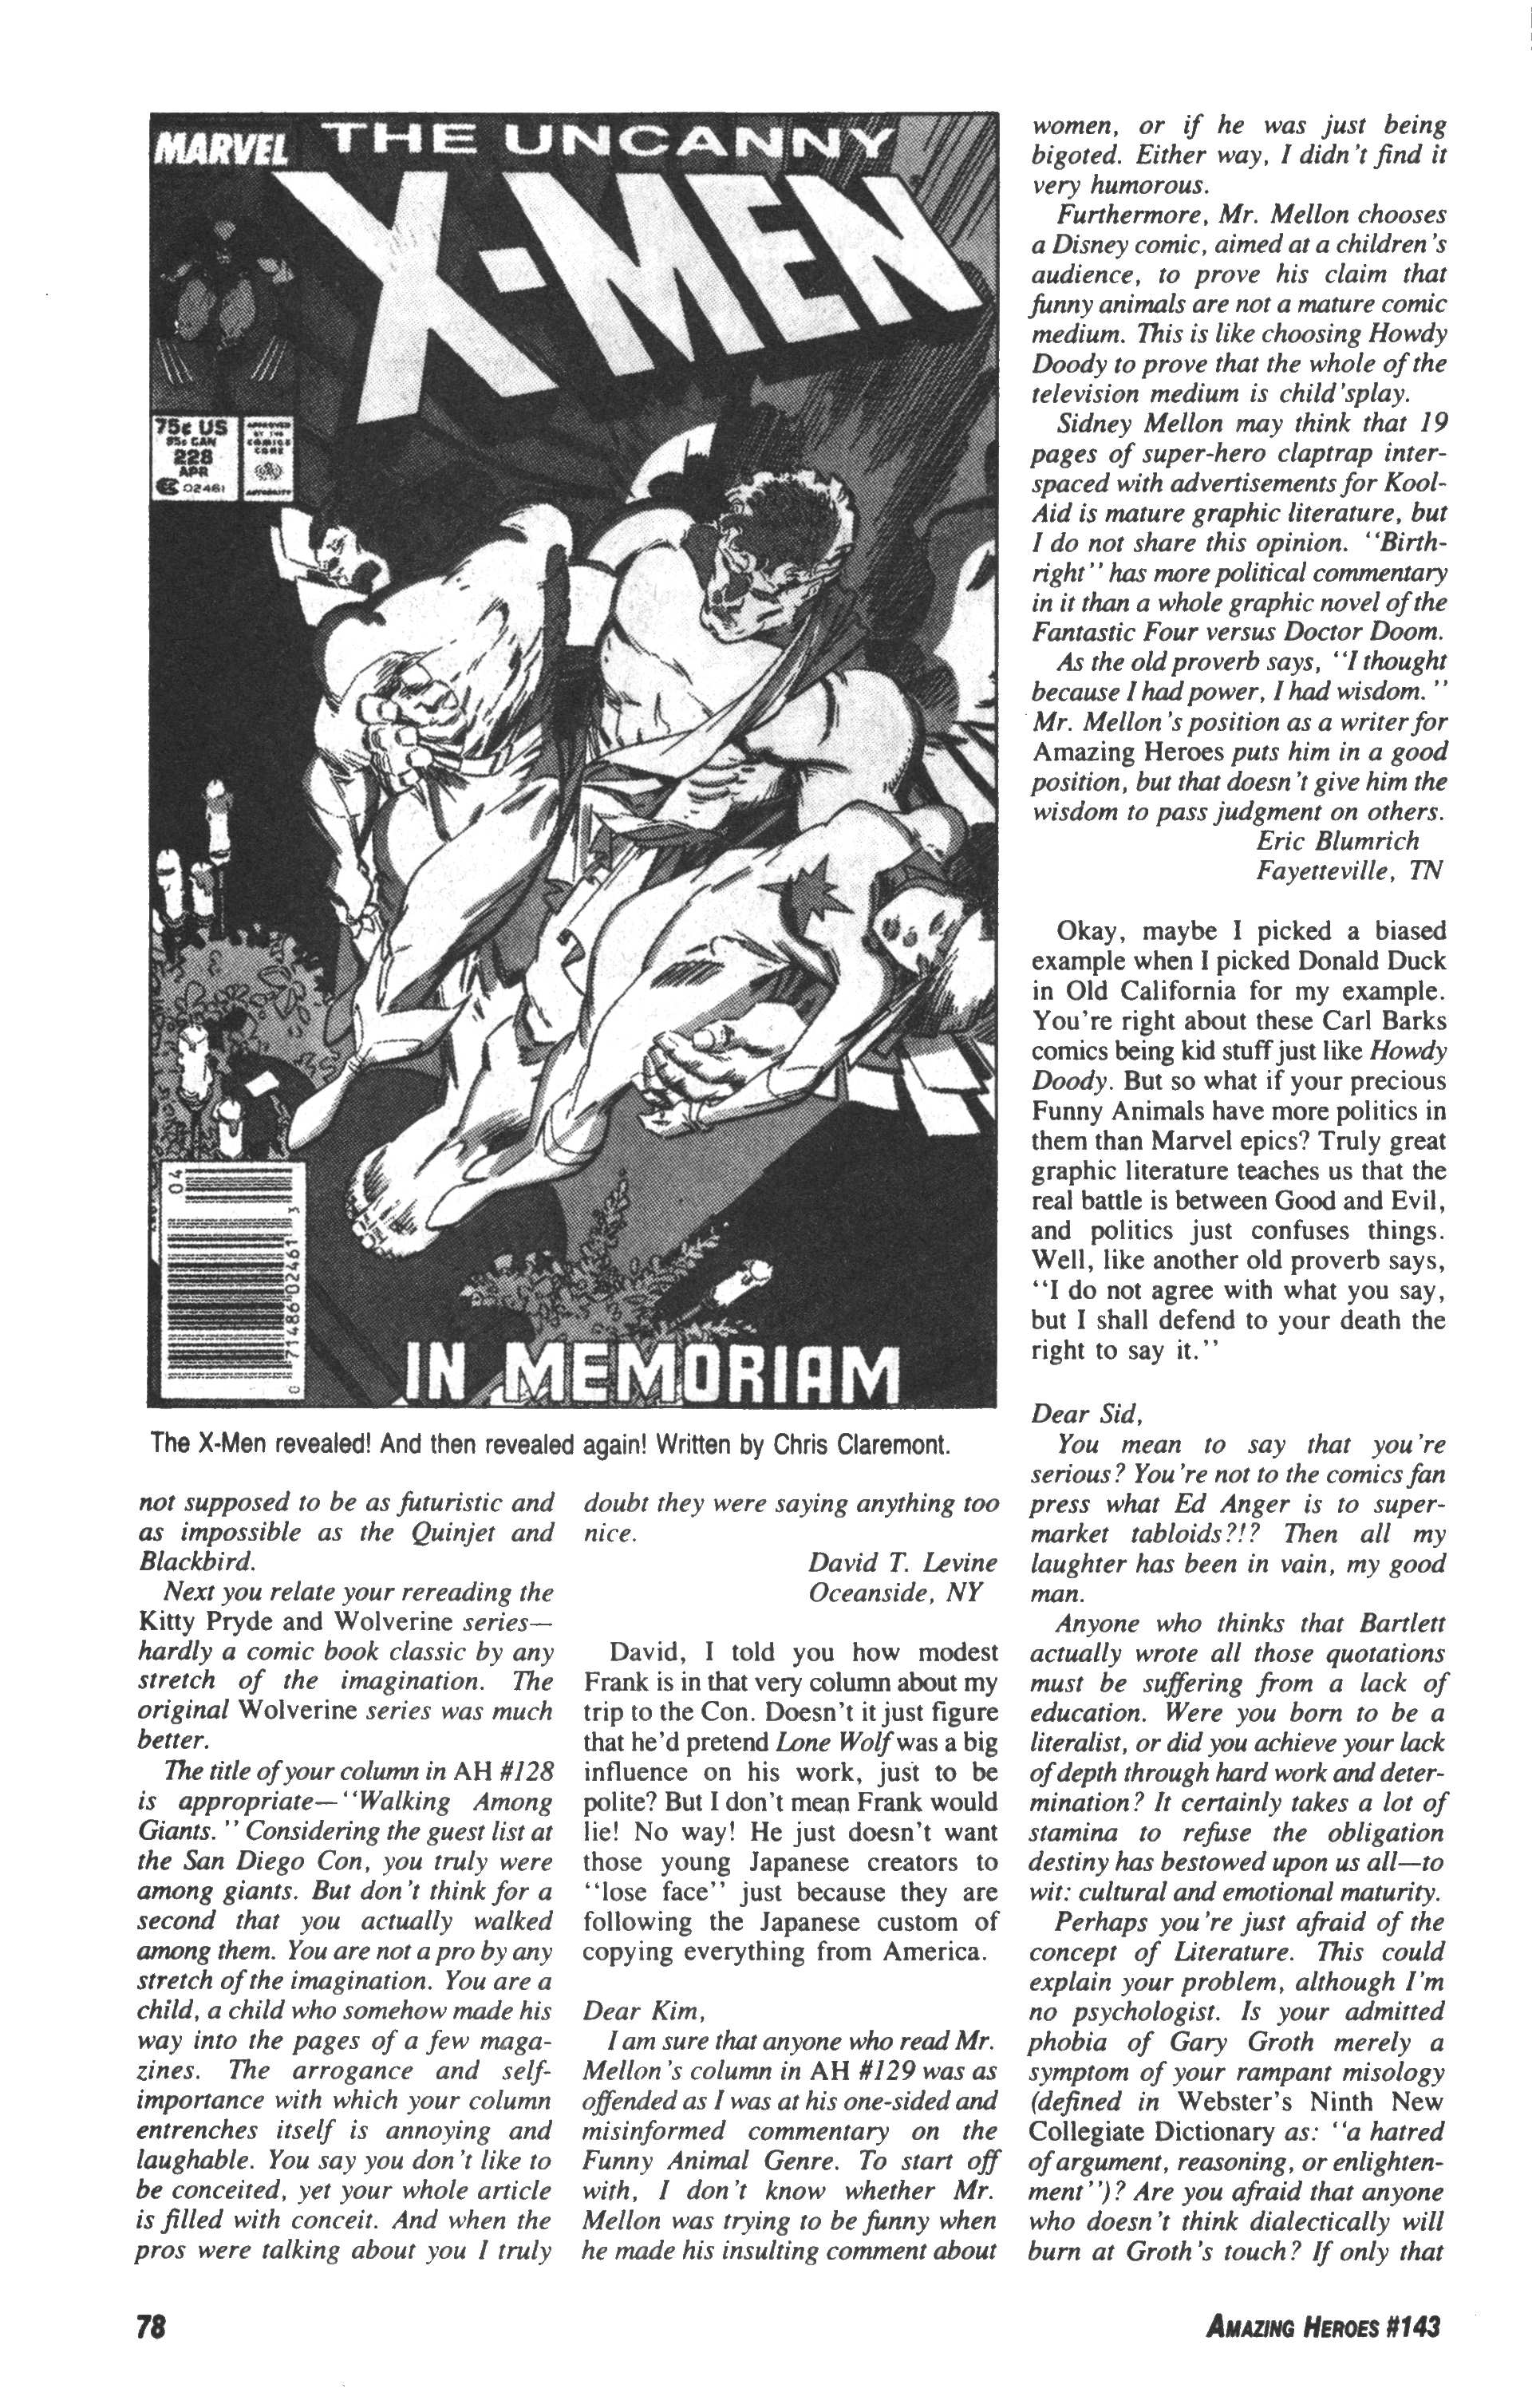 Read online Amazing Heroes comic -  Issue #143 - 78